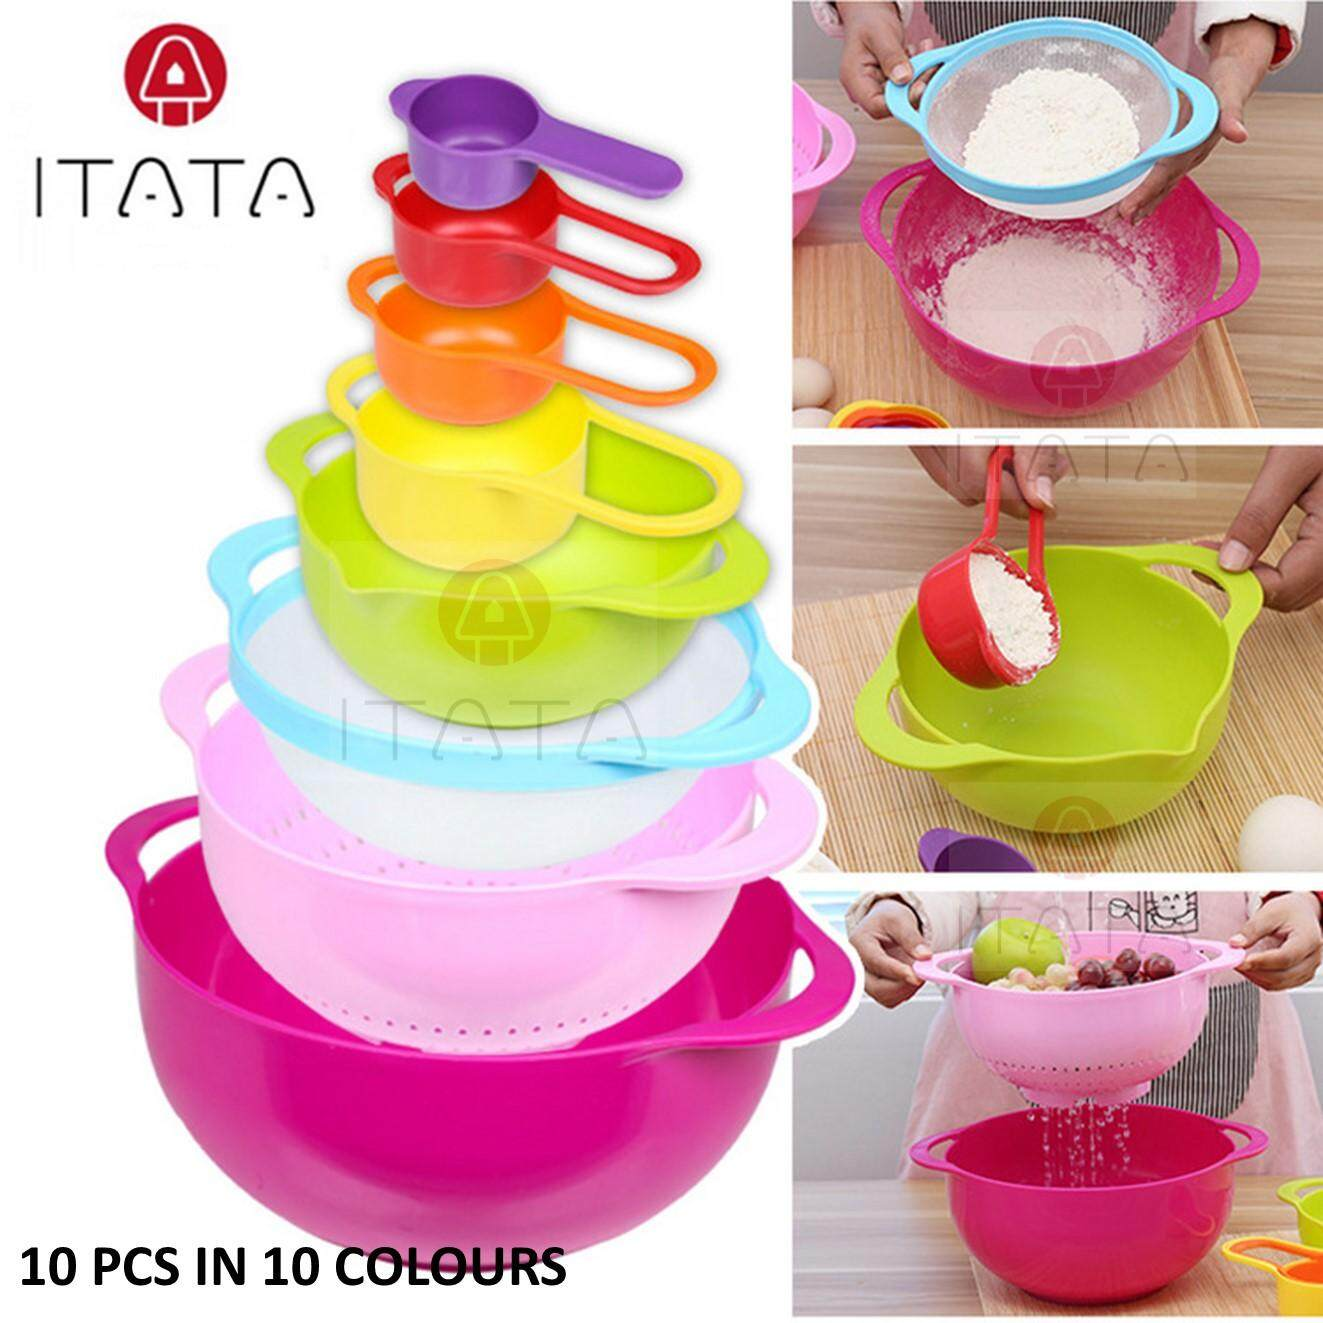 Itata Set Kitchen Multi-Color Mixing Bowls Nesting Plastic Bowl Colorful And Measuring Cups By Freemarket Lifestyle Trading.